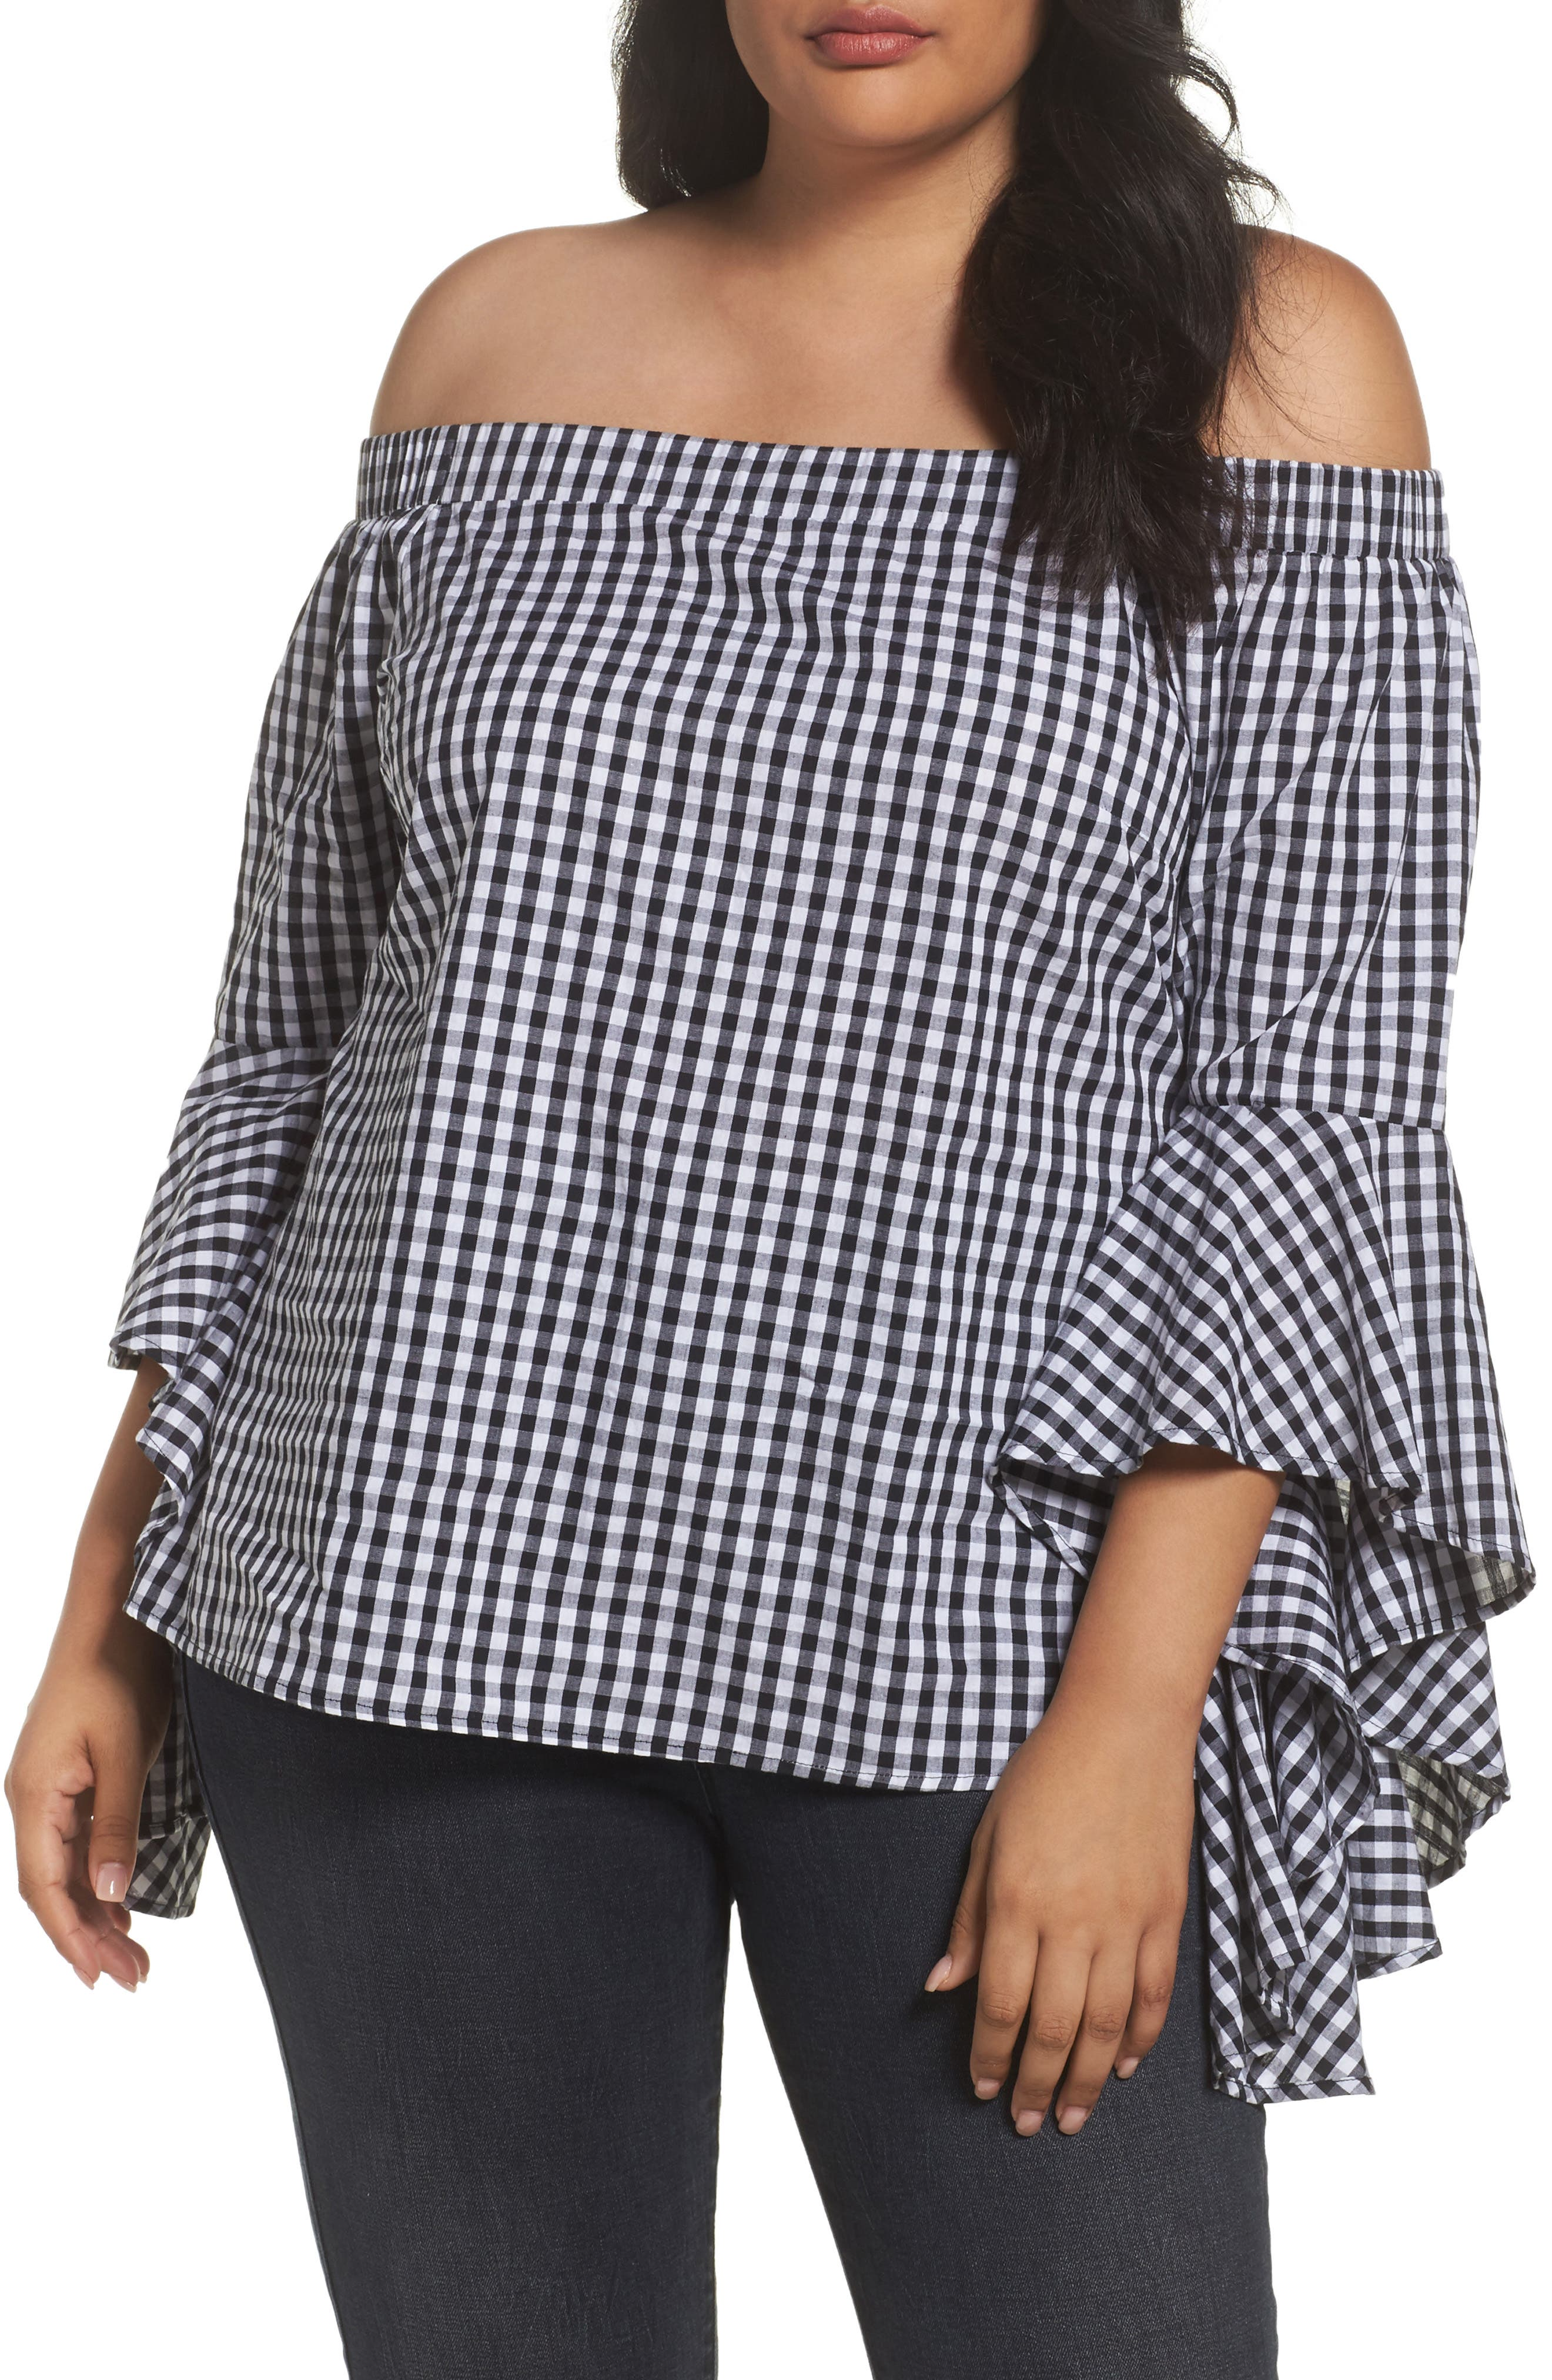 Bell Sleeve Off the Shoulder Shirt,                             Main thumbnail 1, color,                             Black / White